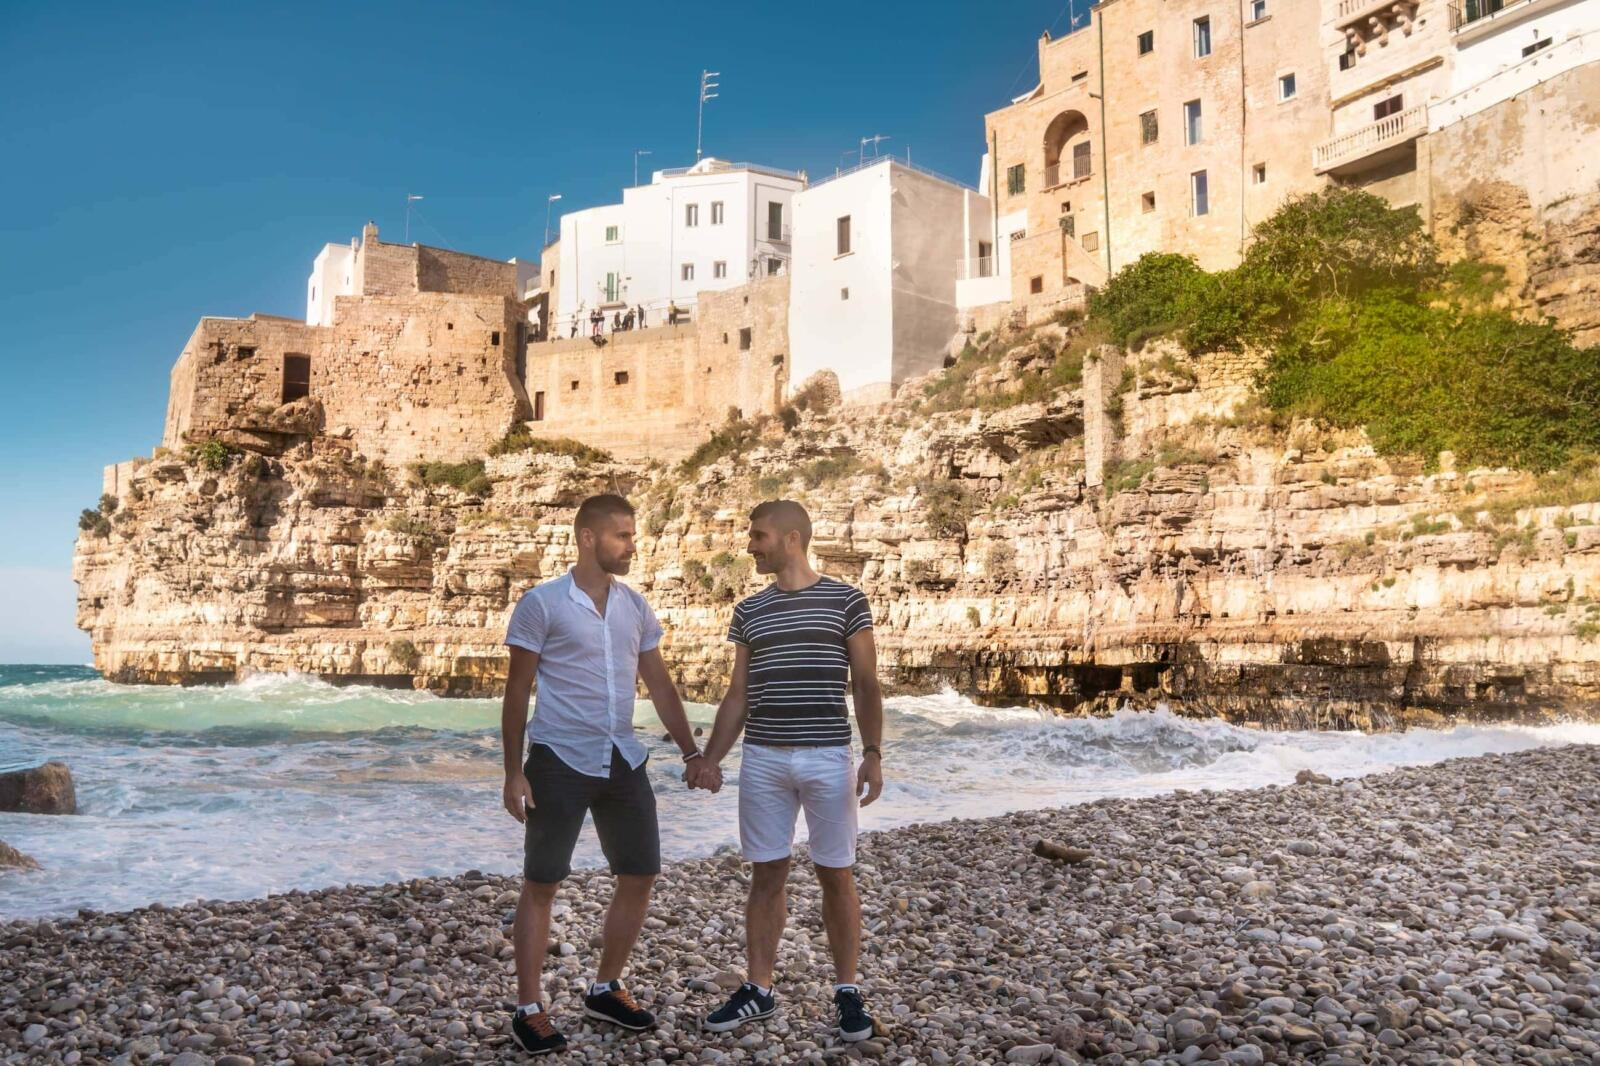 Polignano a Mare one of best things to do in Puglia